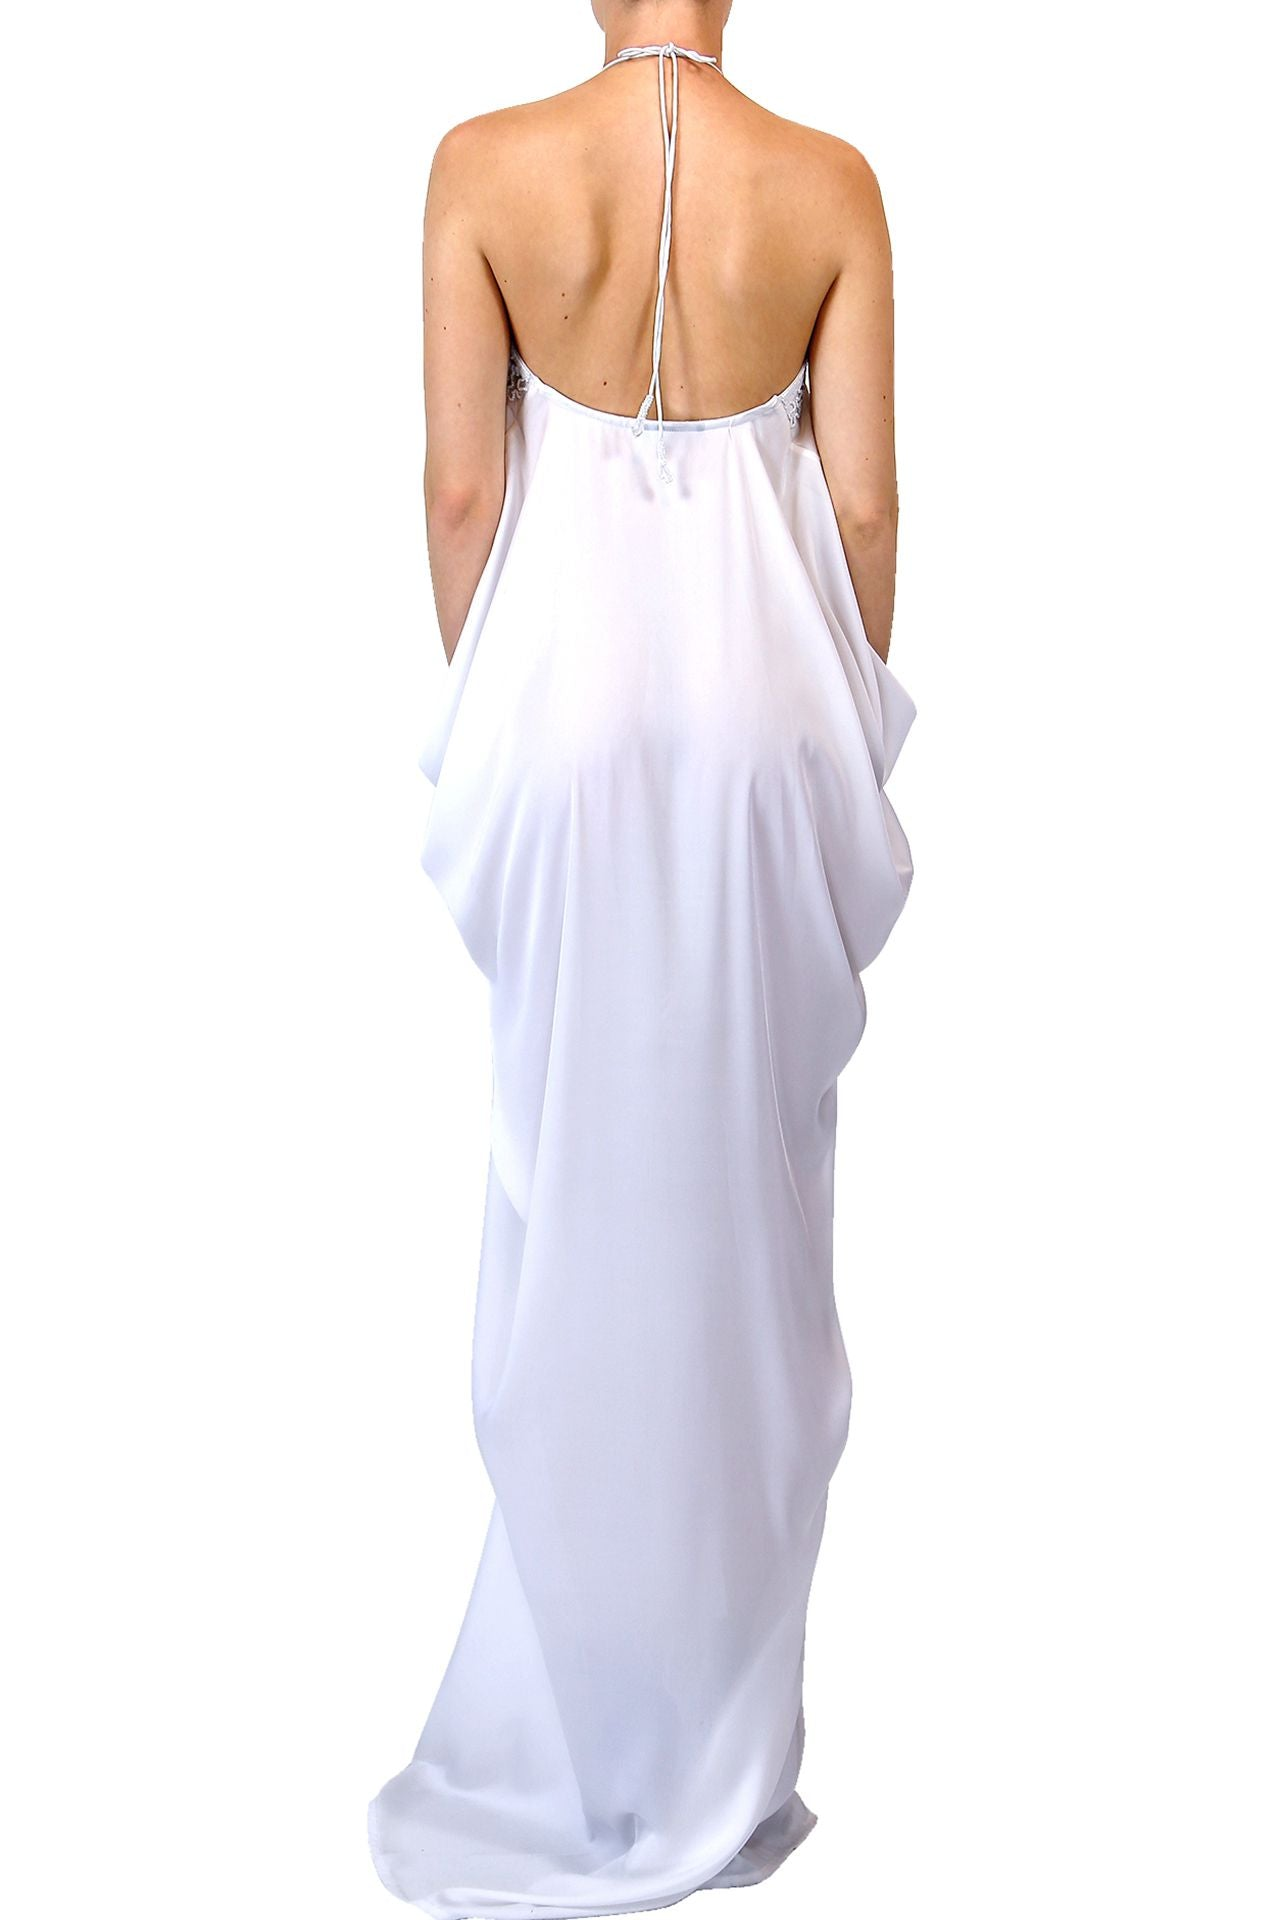 White Caftan dress long